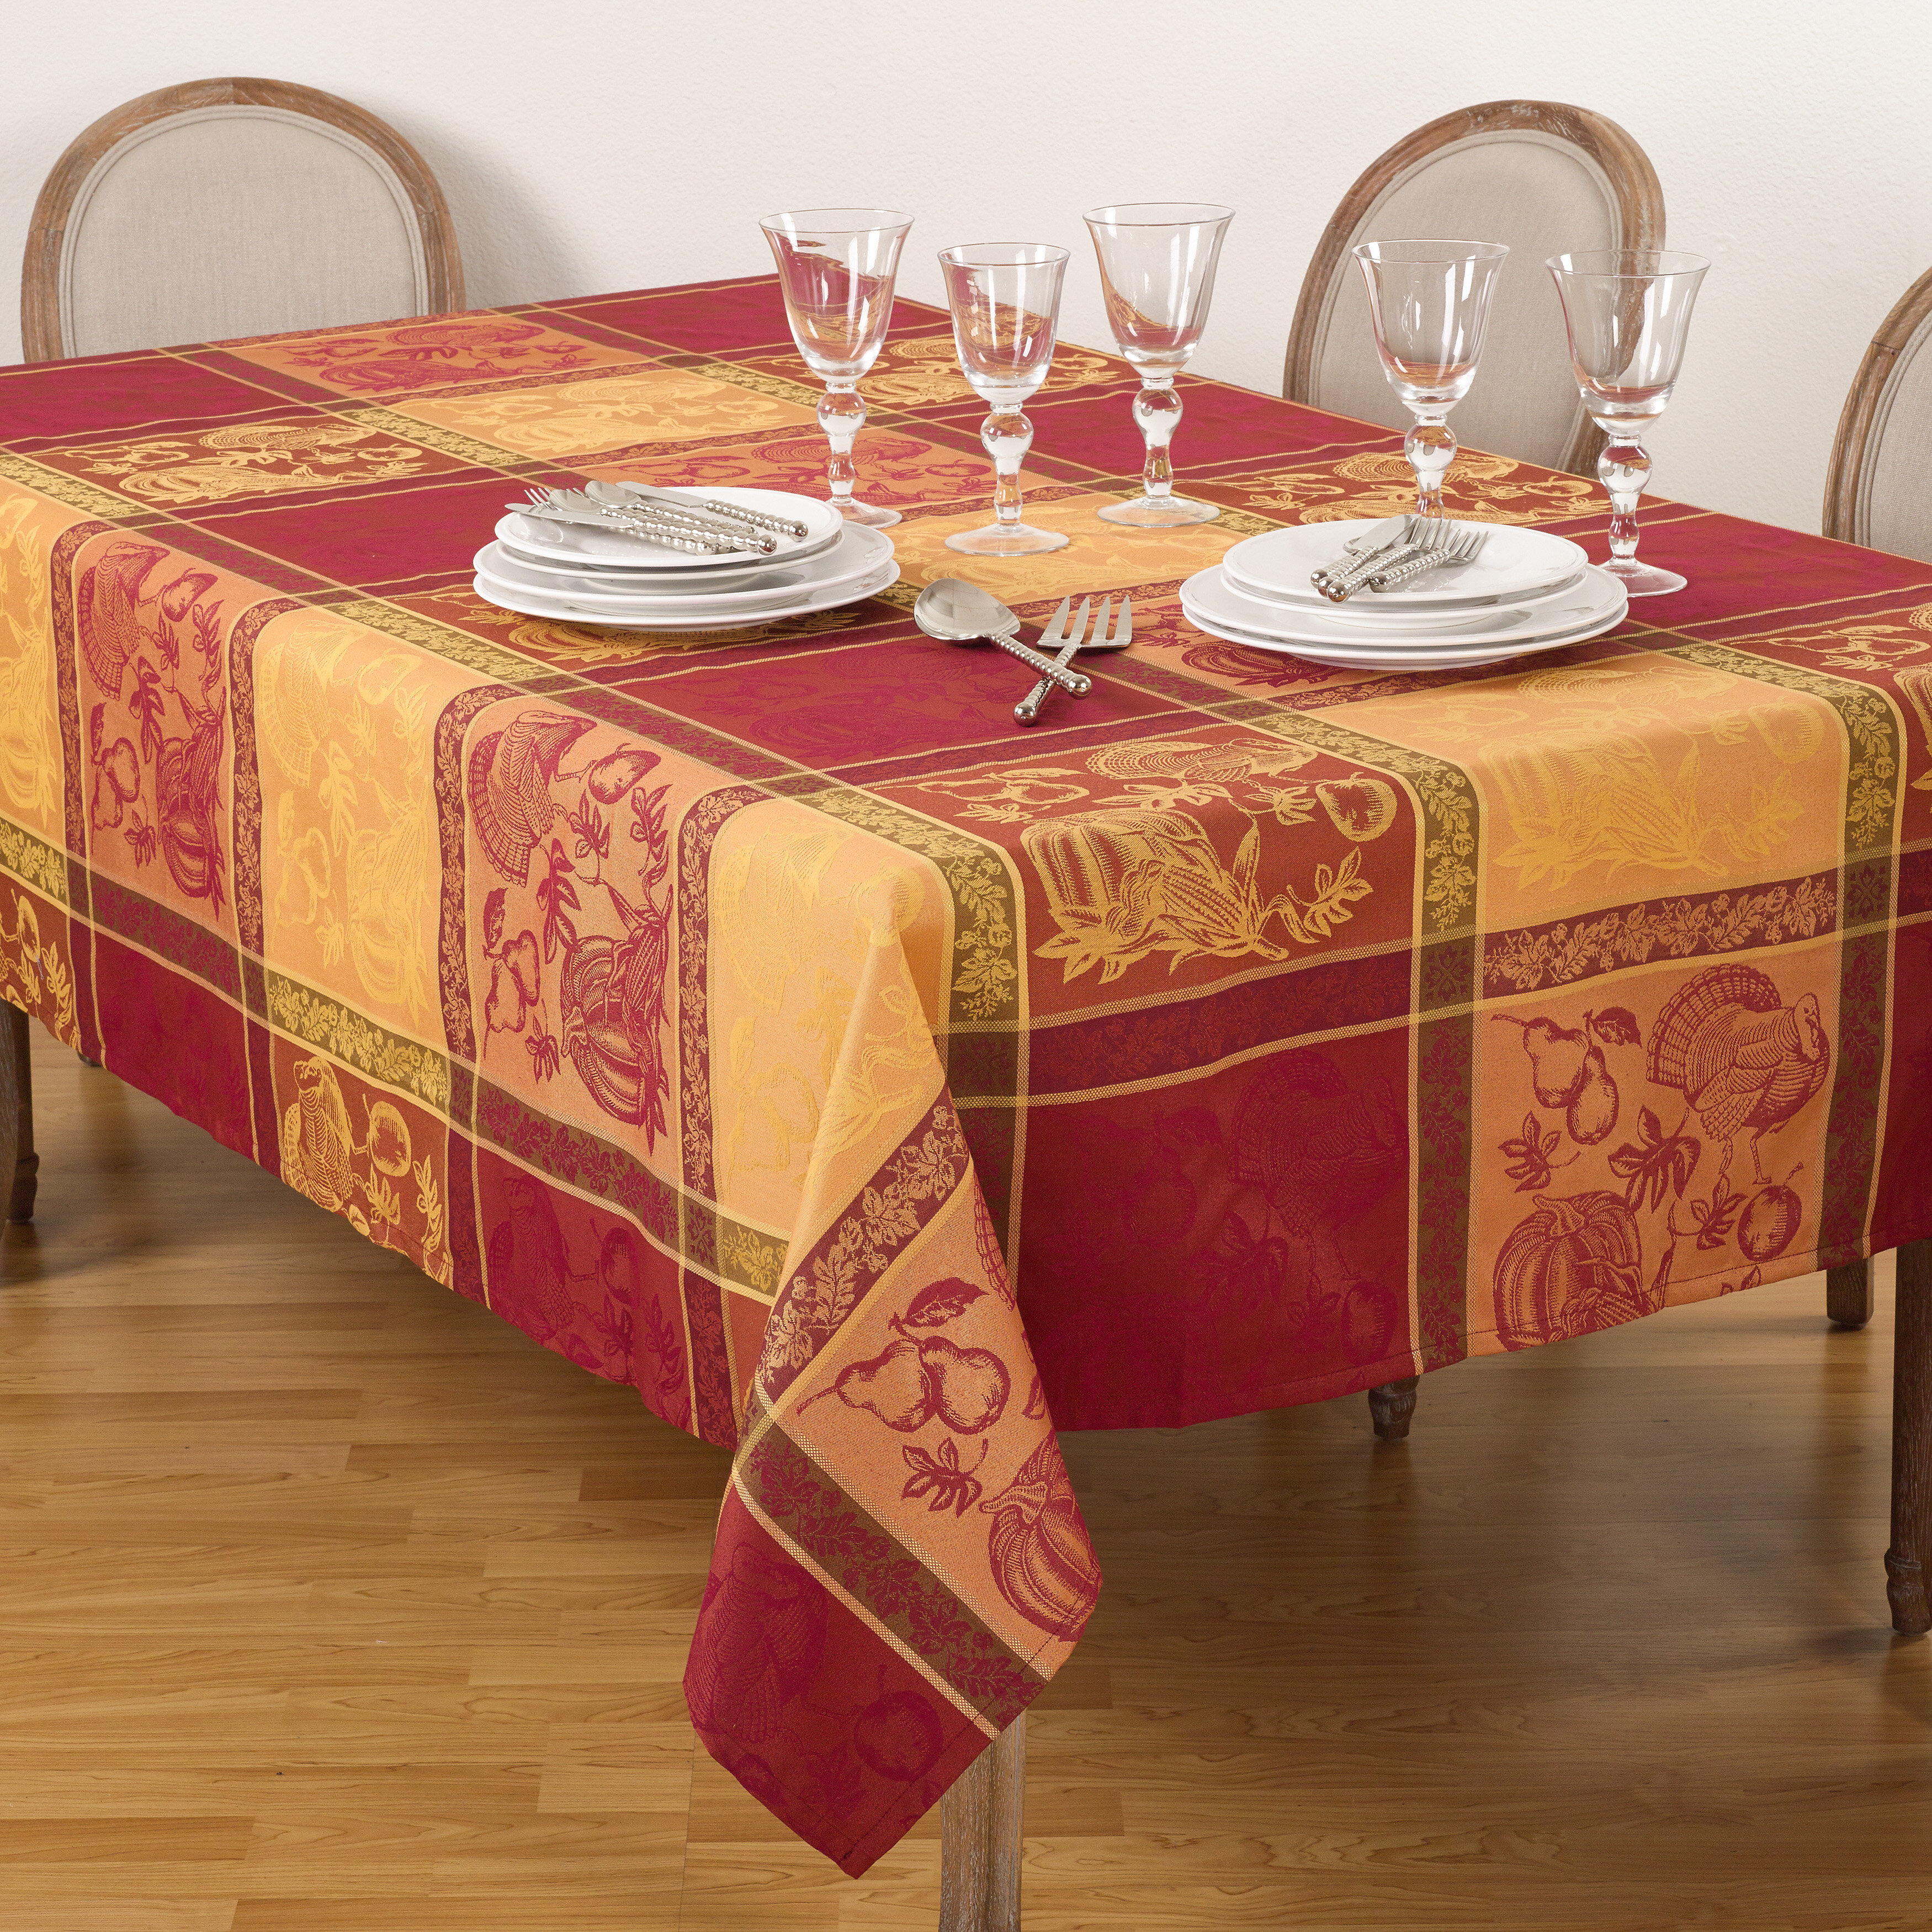 Thanksgiving Fall Autumn Design Jacquard Cotton Blend Tablecloth